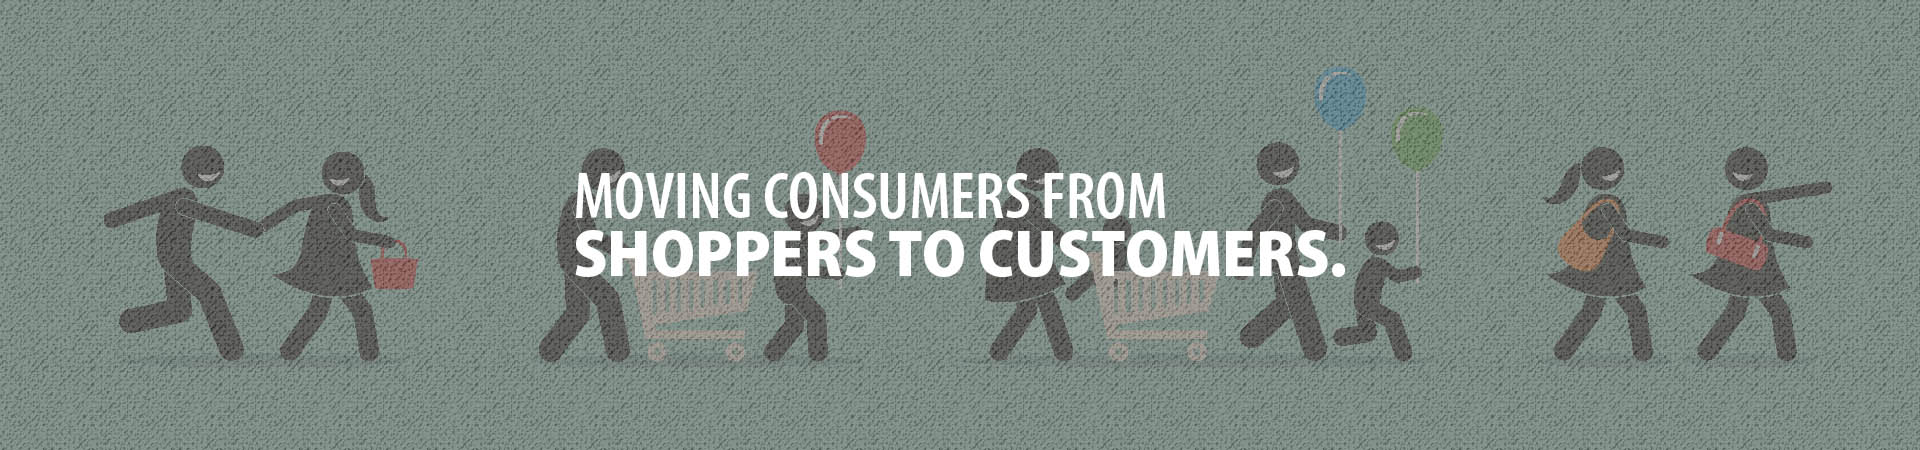 Moving consumers from shoppers to customers.